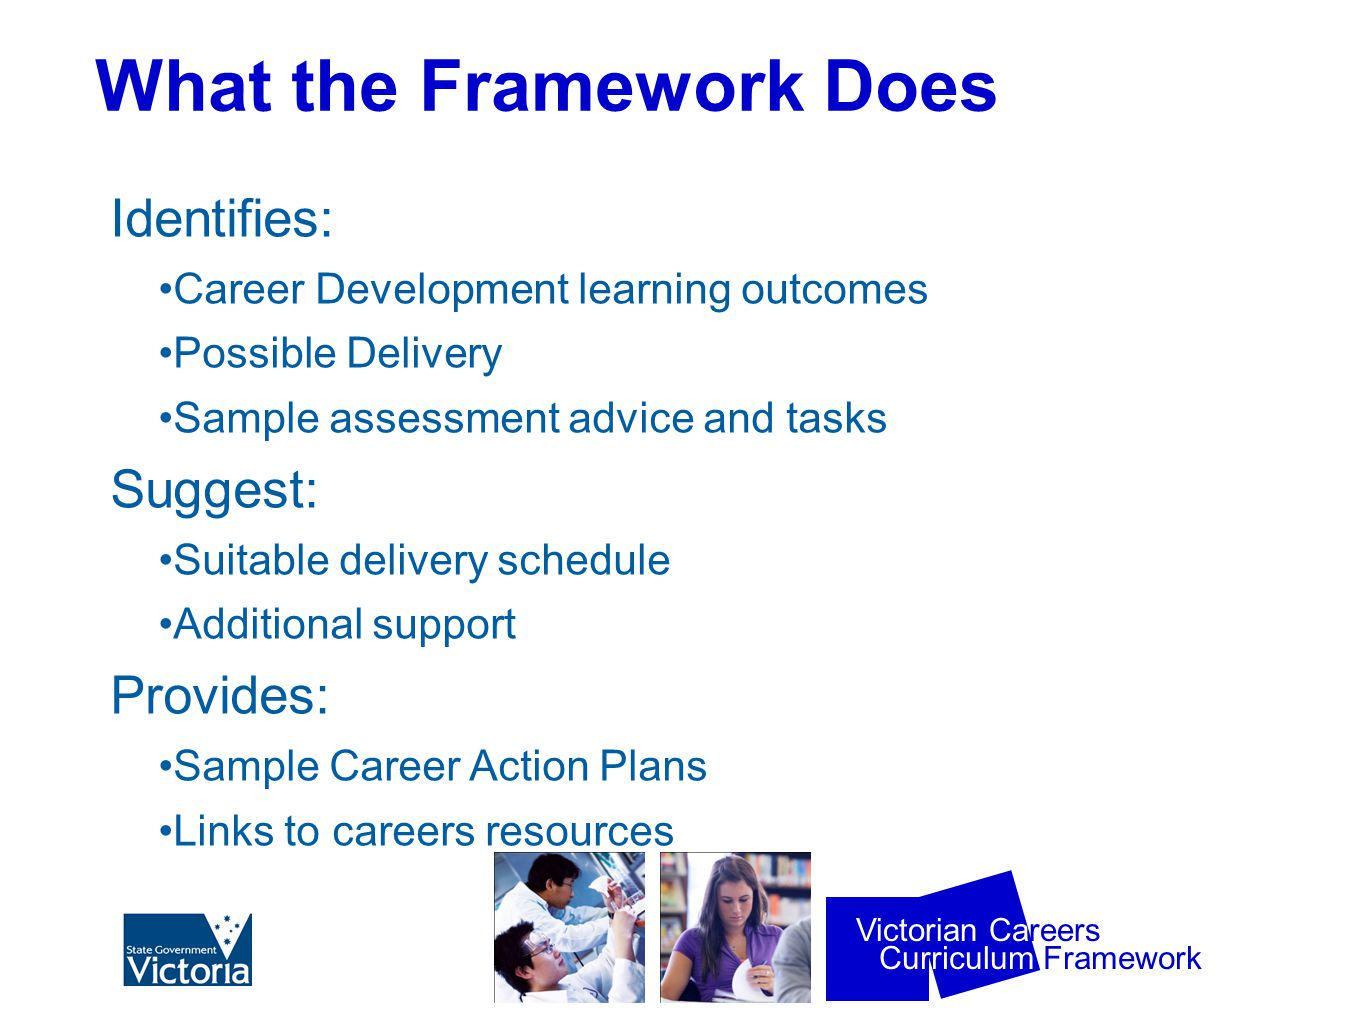 Curriculum Framework Victorian Careers What the Framework Does Identifies: Career Development learning outcomes Possible Delivery Sample assessment advice and tasks Suggest: Suitable delivery schedule Additional support Provides: Sample Career Action Plans Links to careers resources